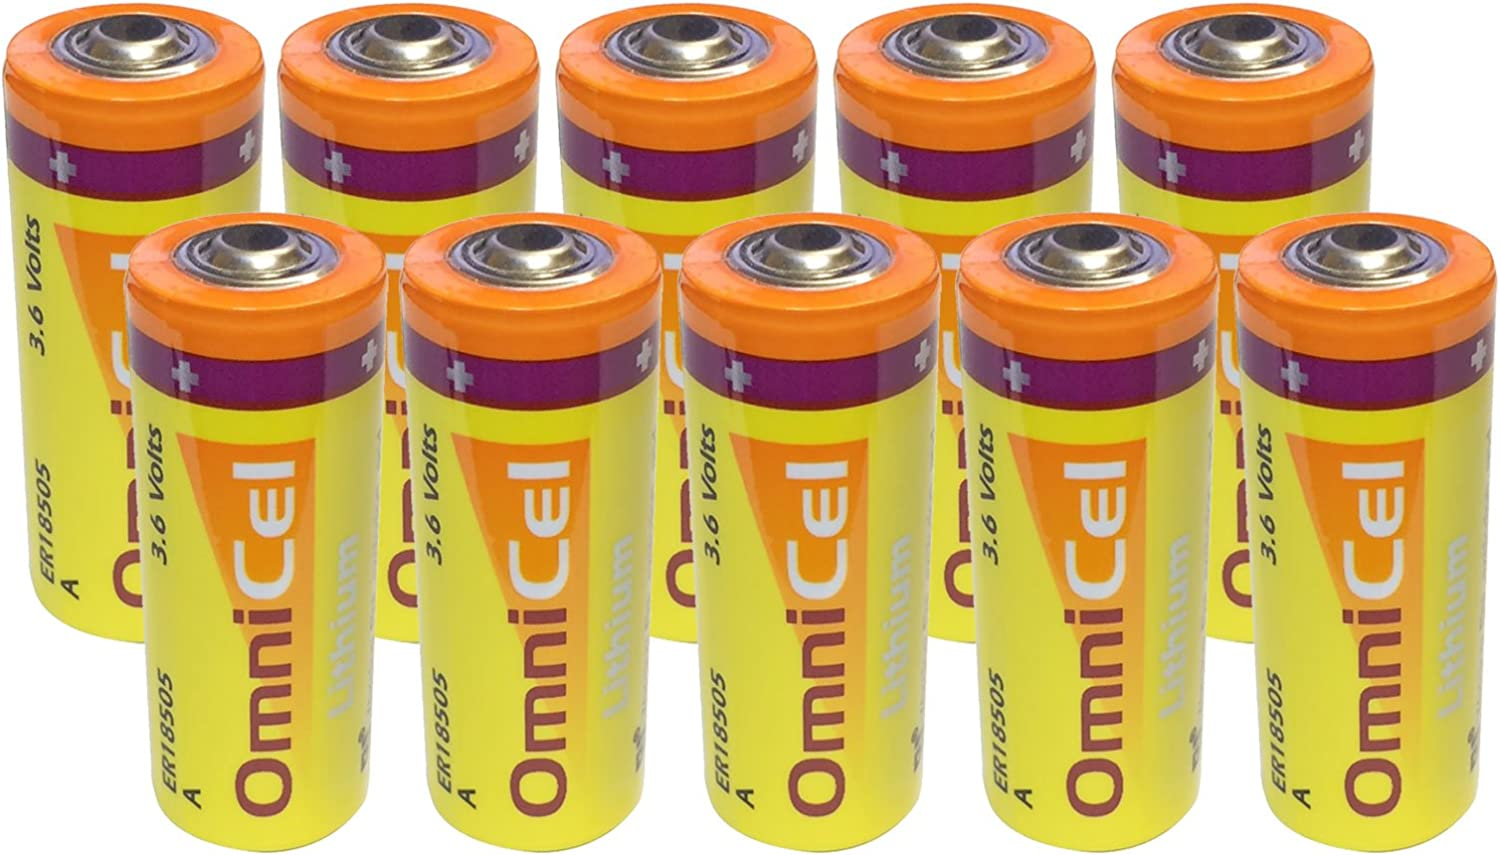 10x Omnicel ER18505 3.6V 3.8Ah Size A Lithium Battery For Computer RAM, CMOS Circuit memory backup power, Medical equipment, Radiocommunication, Numerical control machine tool, Taximeter 712BWqLBYz6LSL1500_